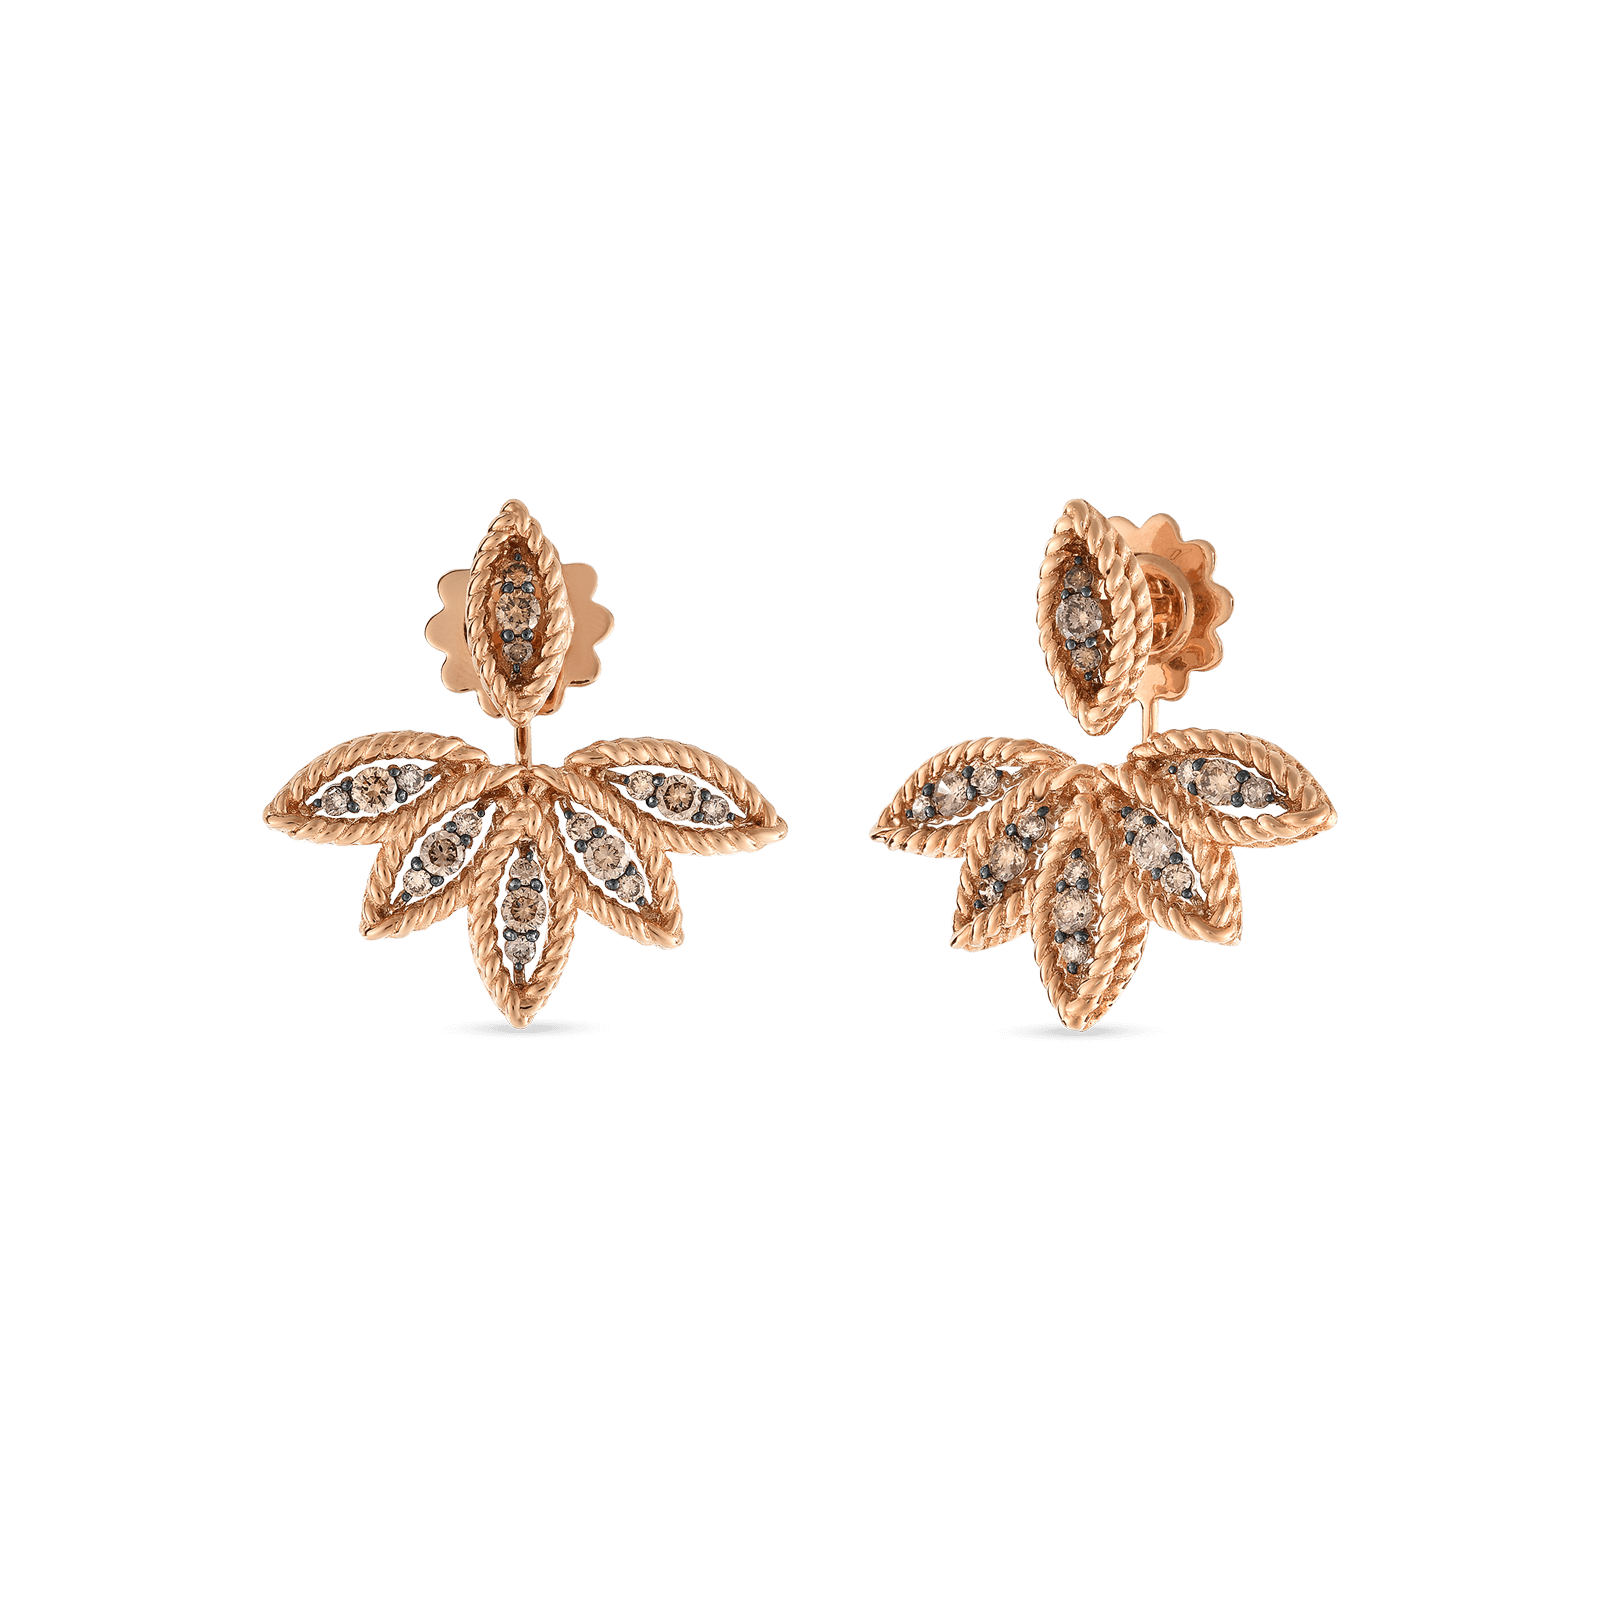 vintage earring fetheray cut studs products hand brown blingtastic earrings diamond stud